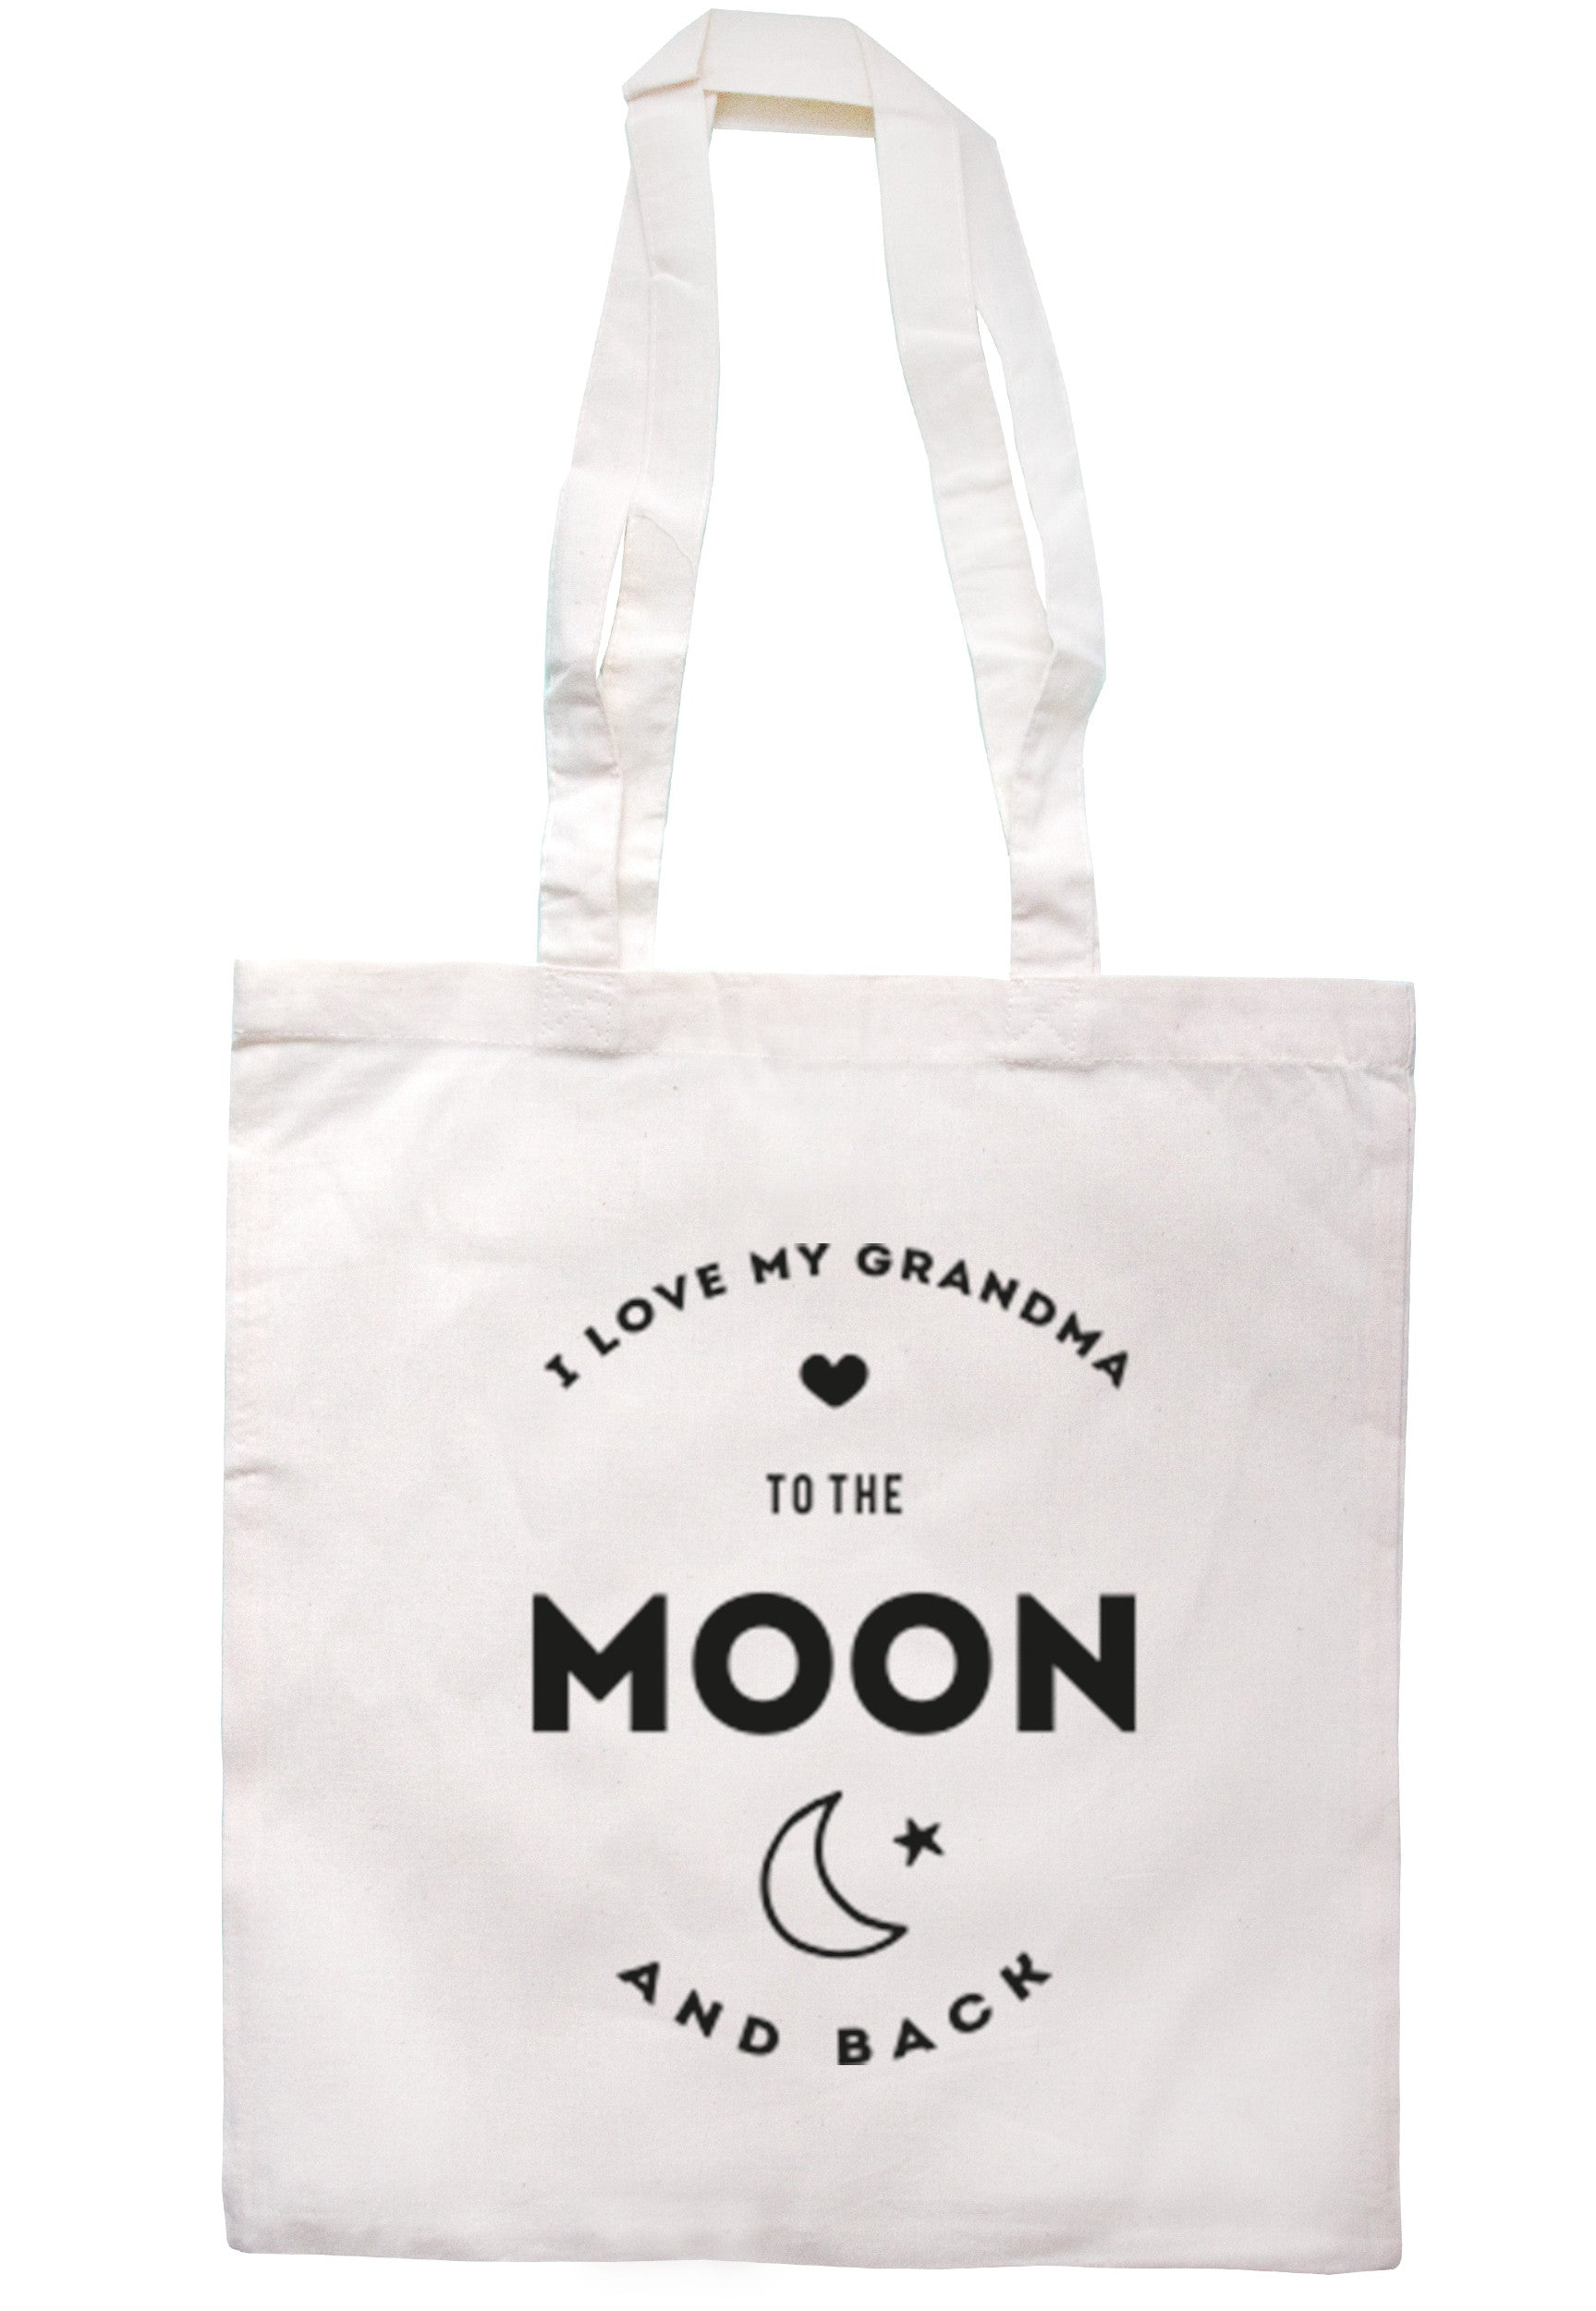 I Love My Grandma To The Moon And Back Tote Bag TB0206 - Illustrated Identity Ltd.